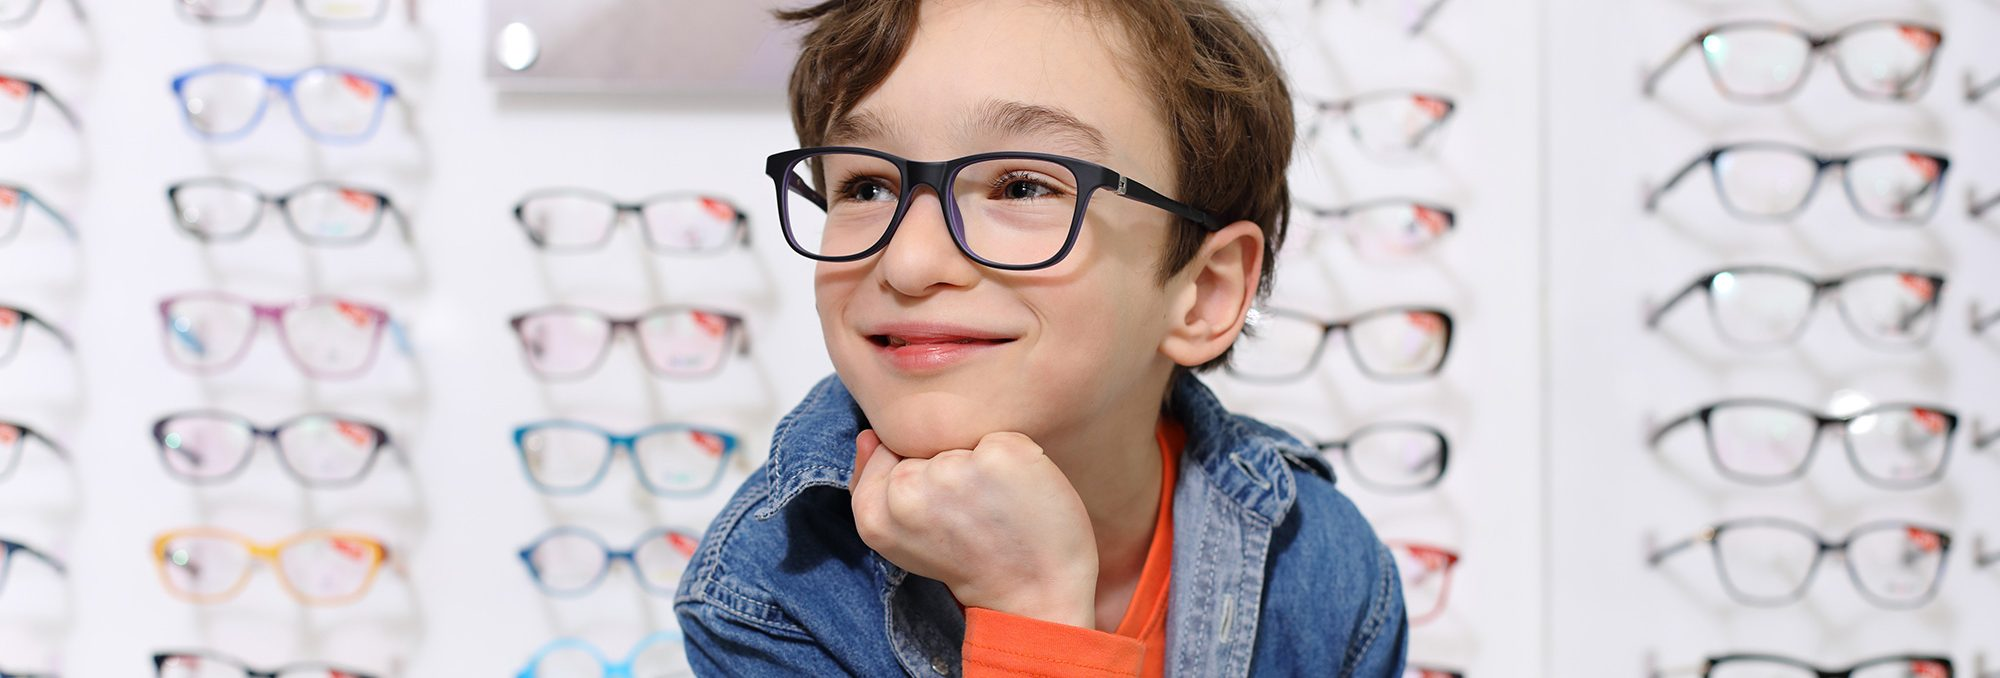 A boy with a denim shirt and glasses